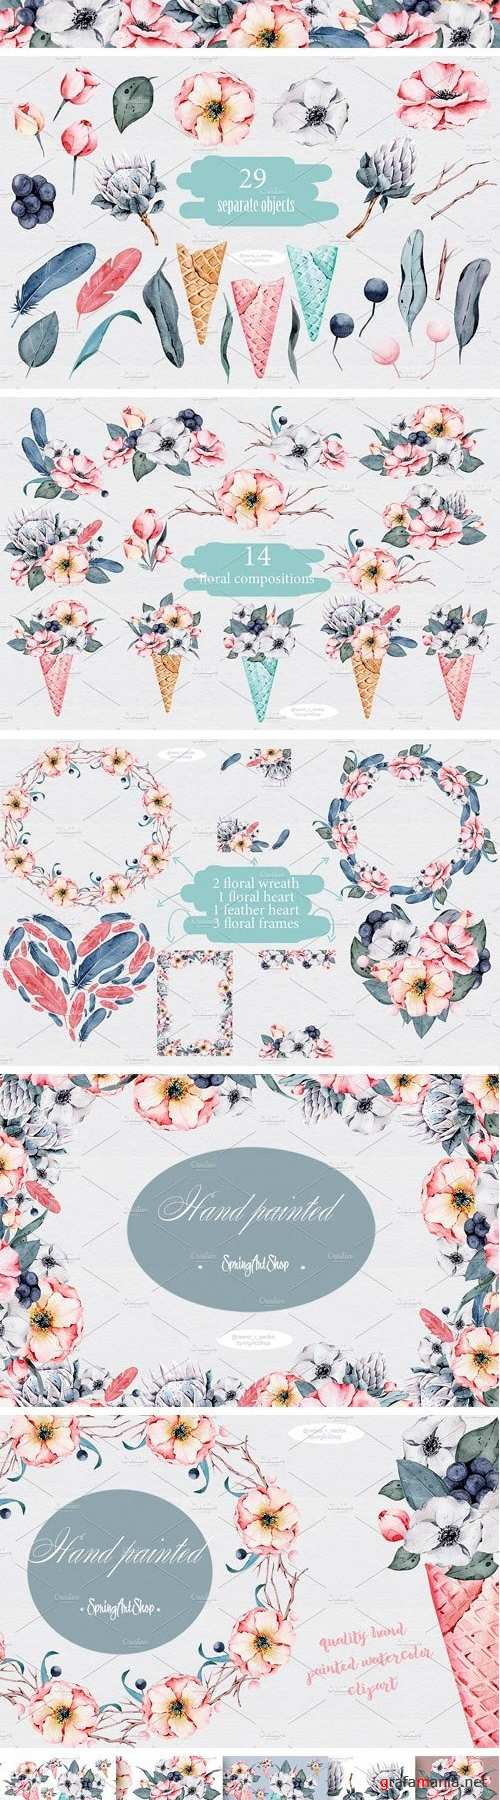 Floral Icecream Big Watercolor Set - 1583114